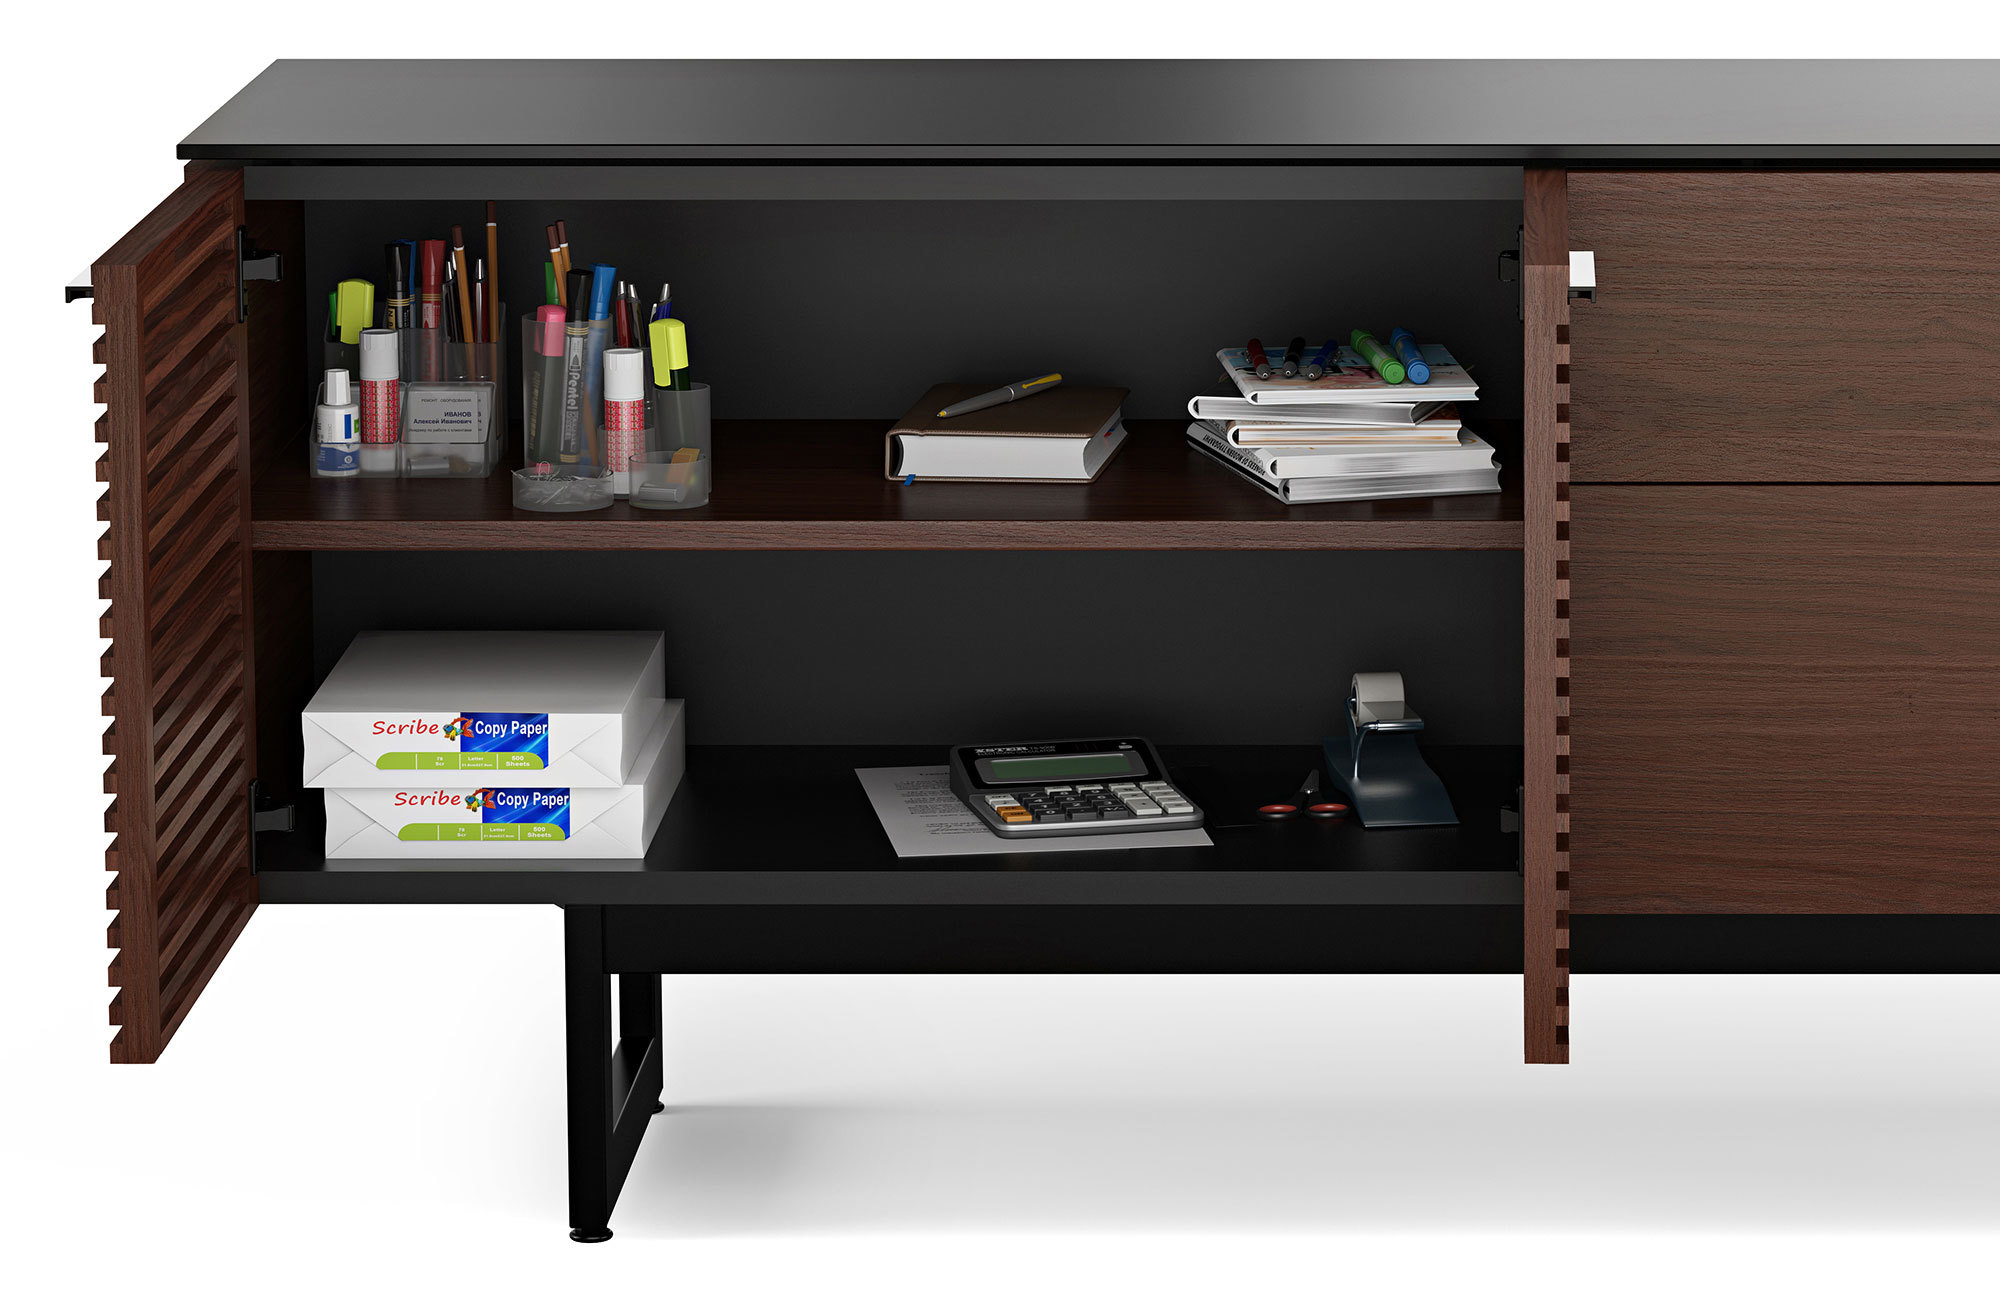 Incroyable Flexible Storage. Adjustable Shelving Provides Storage For Office ...